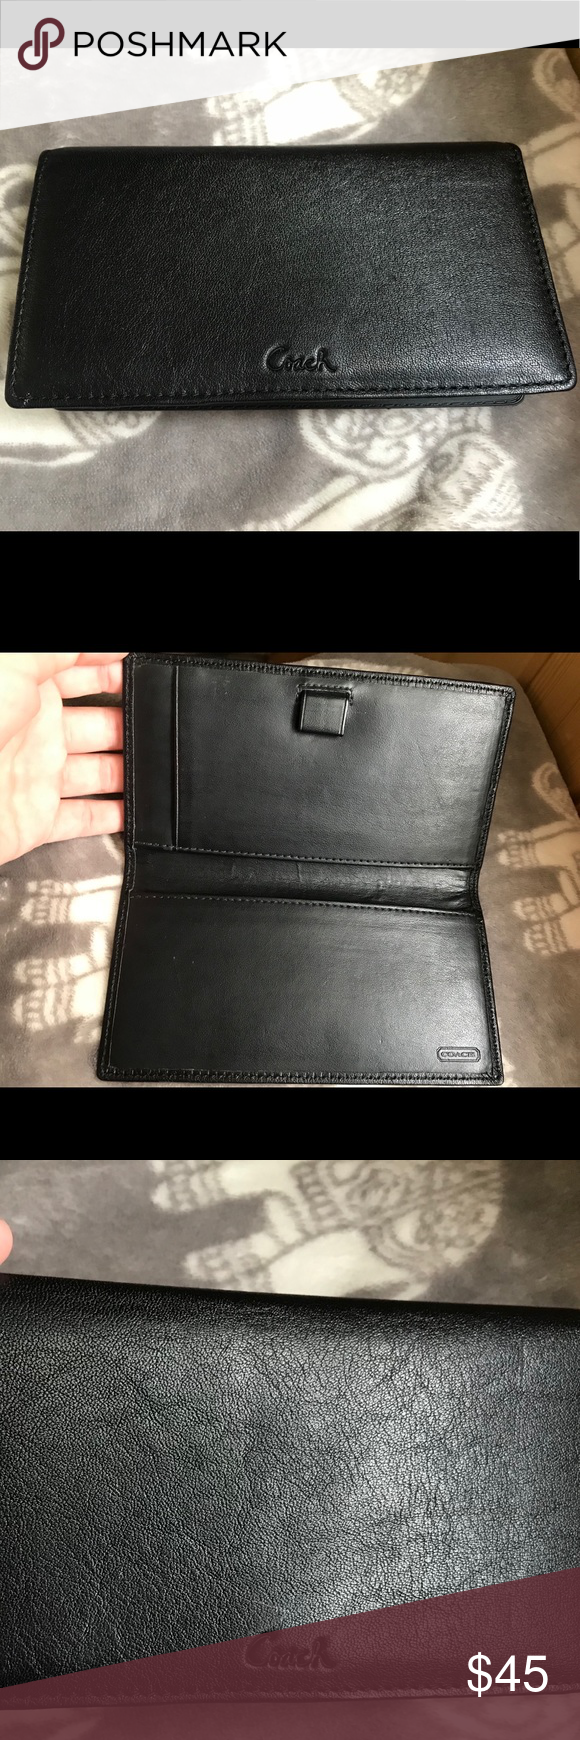 COACH CHECKBOOK Excellent condition checkbook  Used twice.  Very classy and chic  Coach checkbook  Make an offer Coach Accessories #myposhpicks